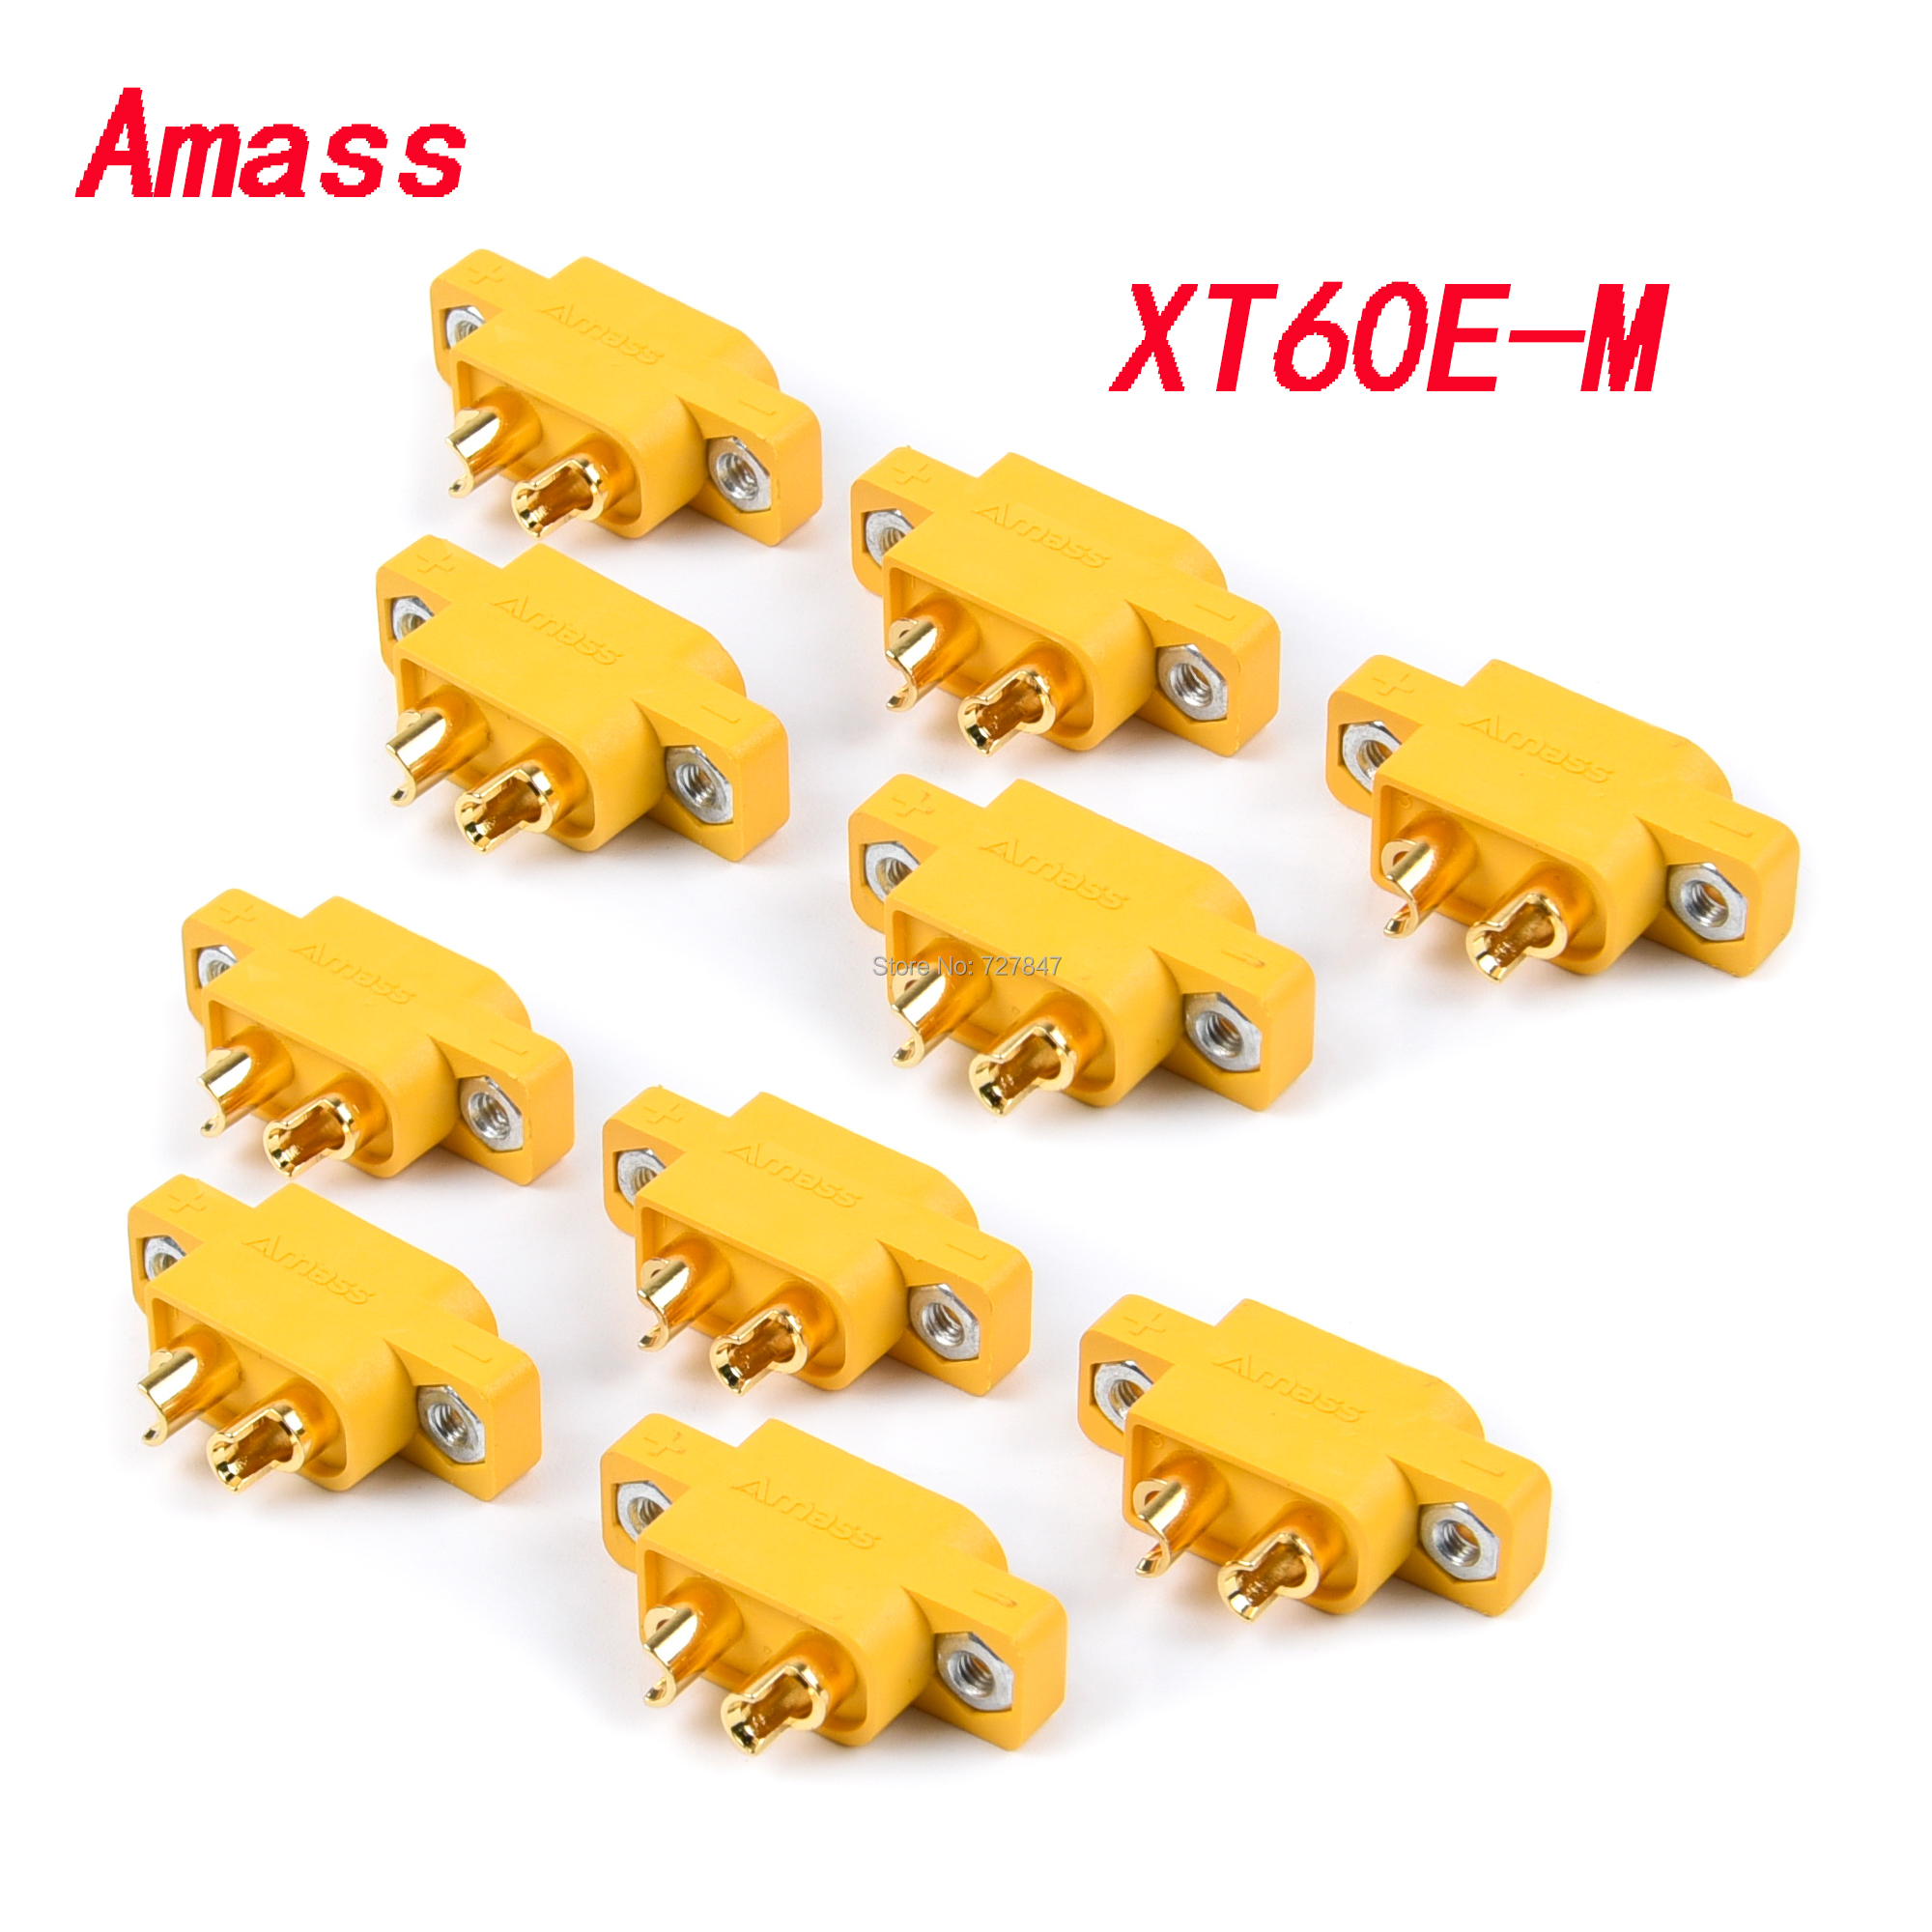 5/10PCS AMASS XT60E-M Mountable XT60 Male Plug Connector For RC Drone FPV Racing Fixed Board DIY Spare Part 4.23g